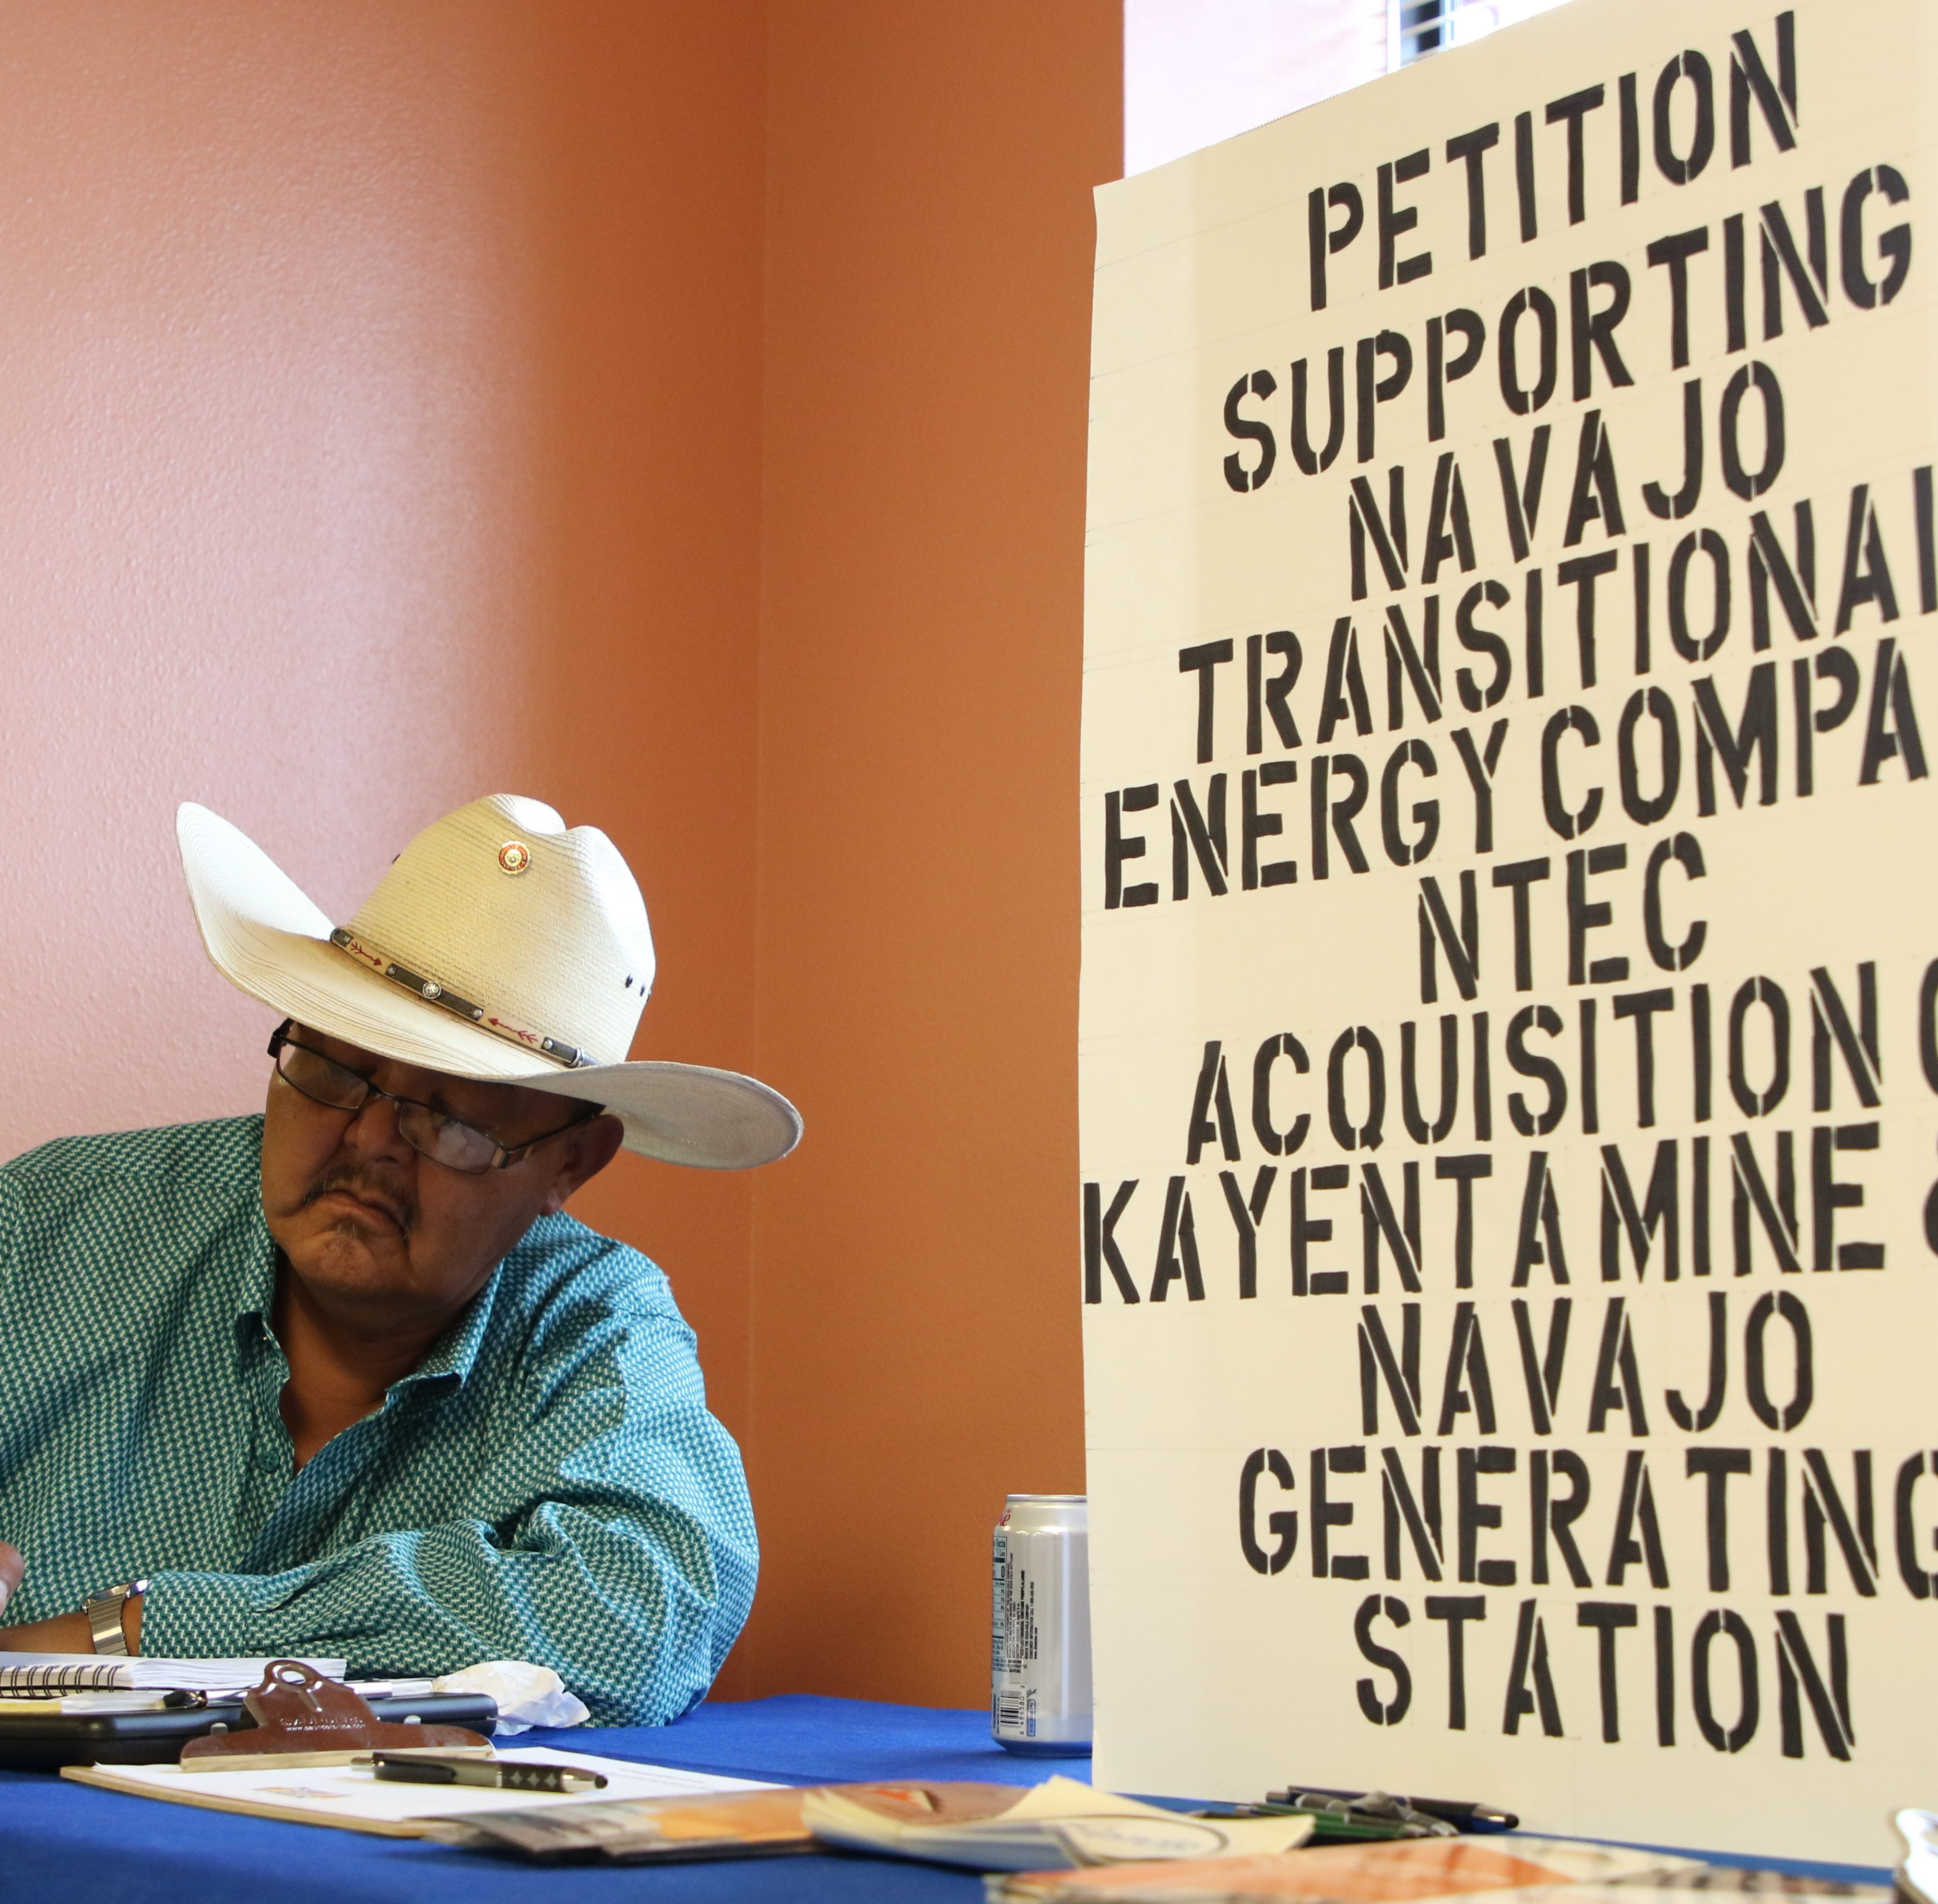 Break down in Navajo Generating Station acquisition does not curb town hall meeting